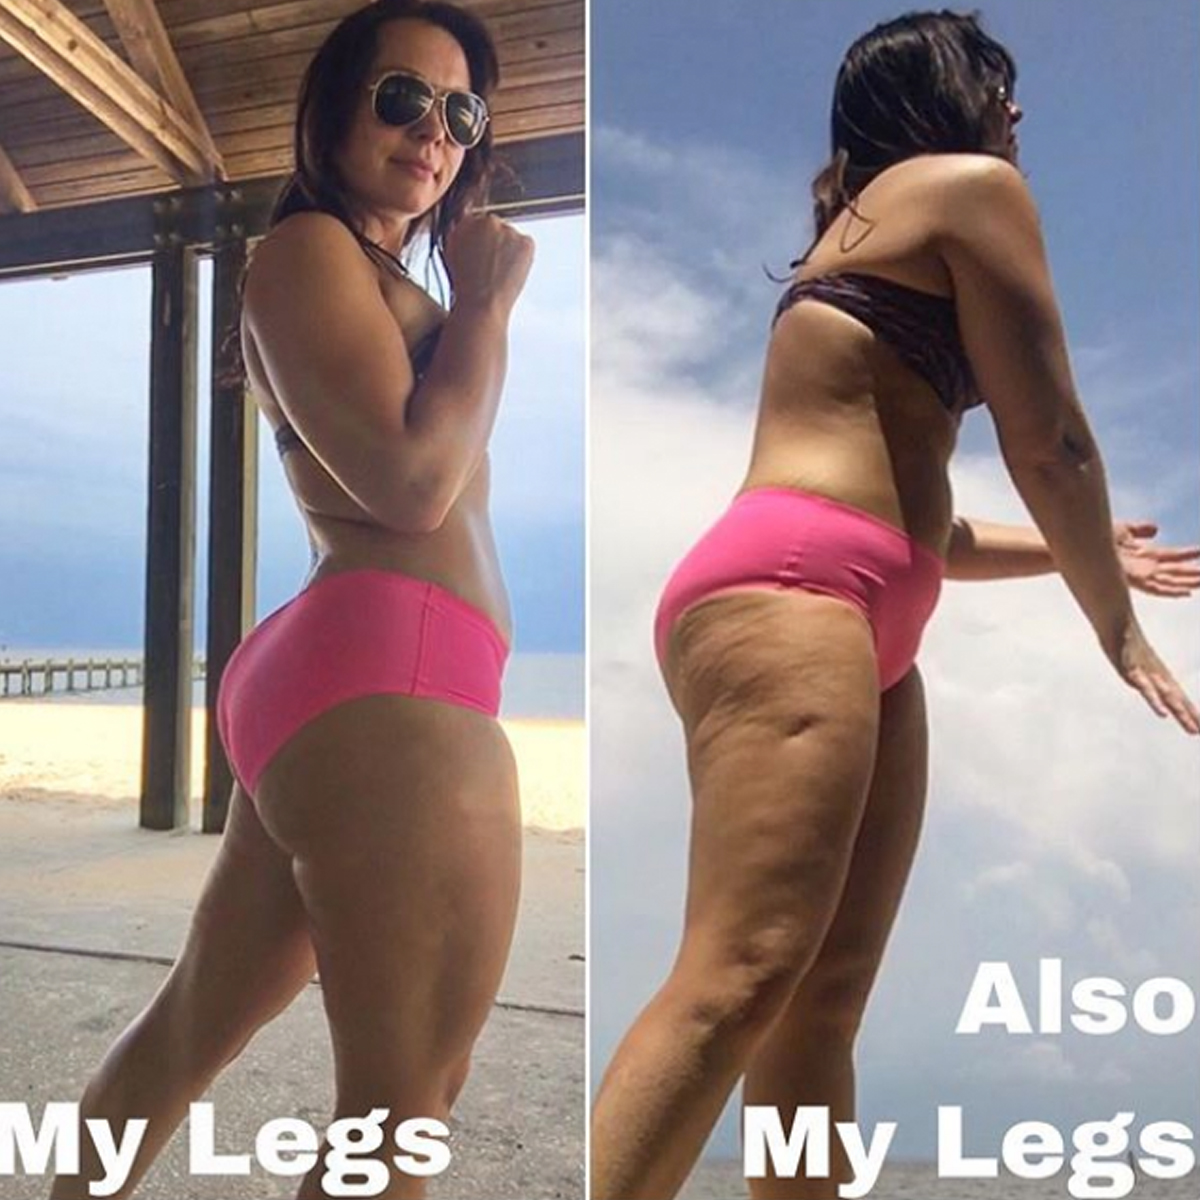 The body positive cellulite photo going viral on Instagram